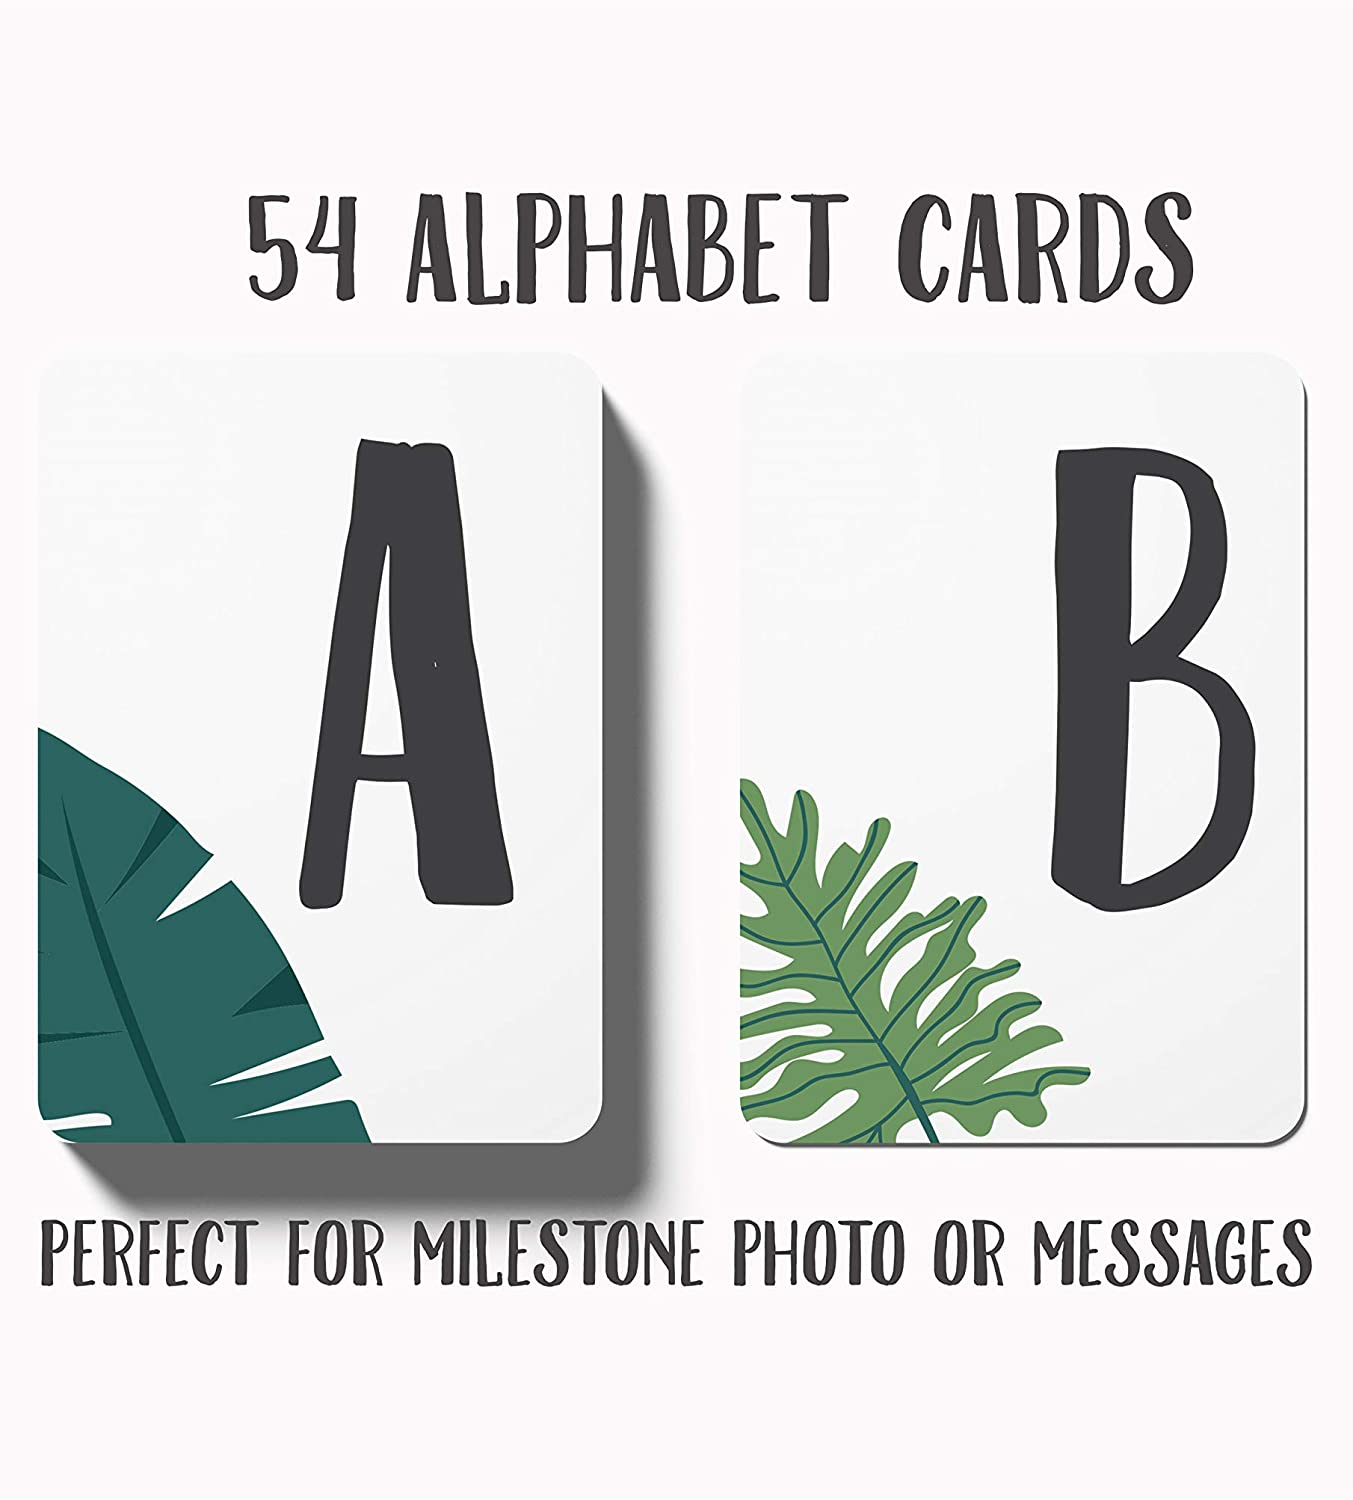 Bambiny Alphabet Cards for Unique Messages - ABC Flash Cards for Kids and Adults - 54 Decorative Flashcards with Alphabet Letters - 300GSM Art Paper with Glossy Finish - Create Beautiful Decorations